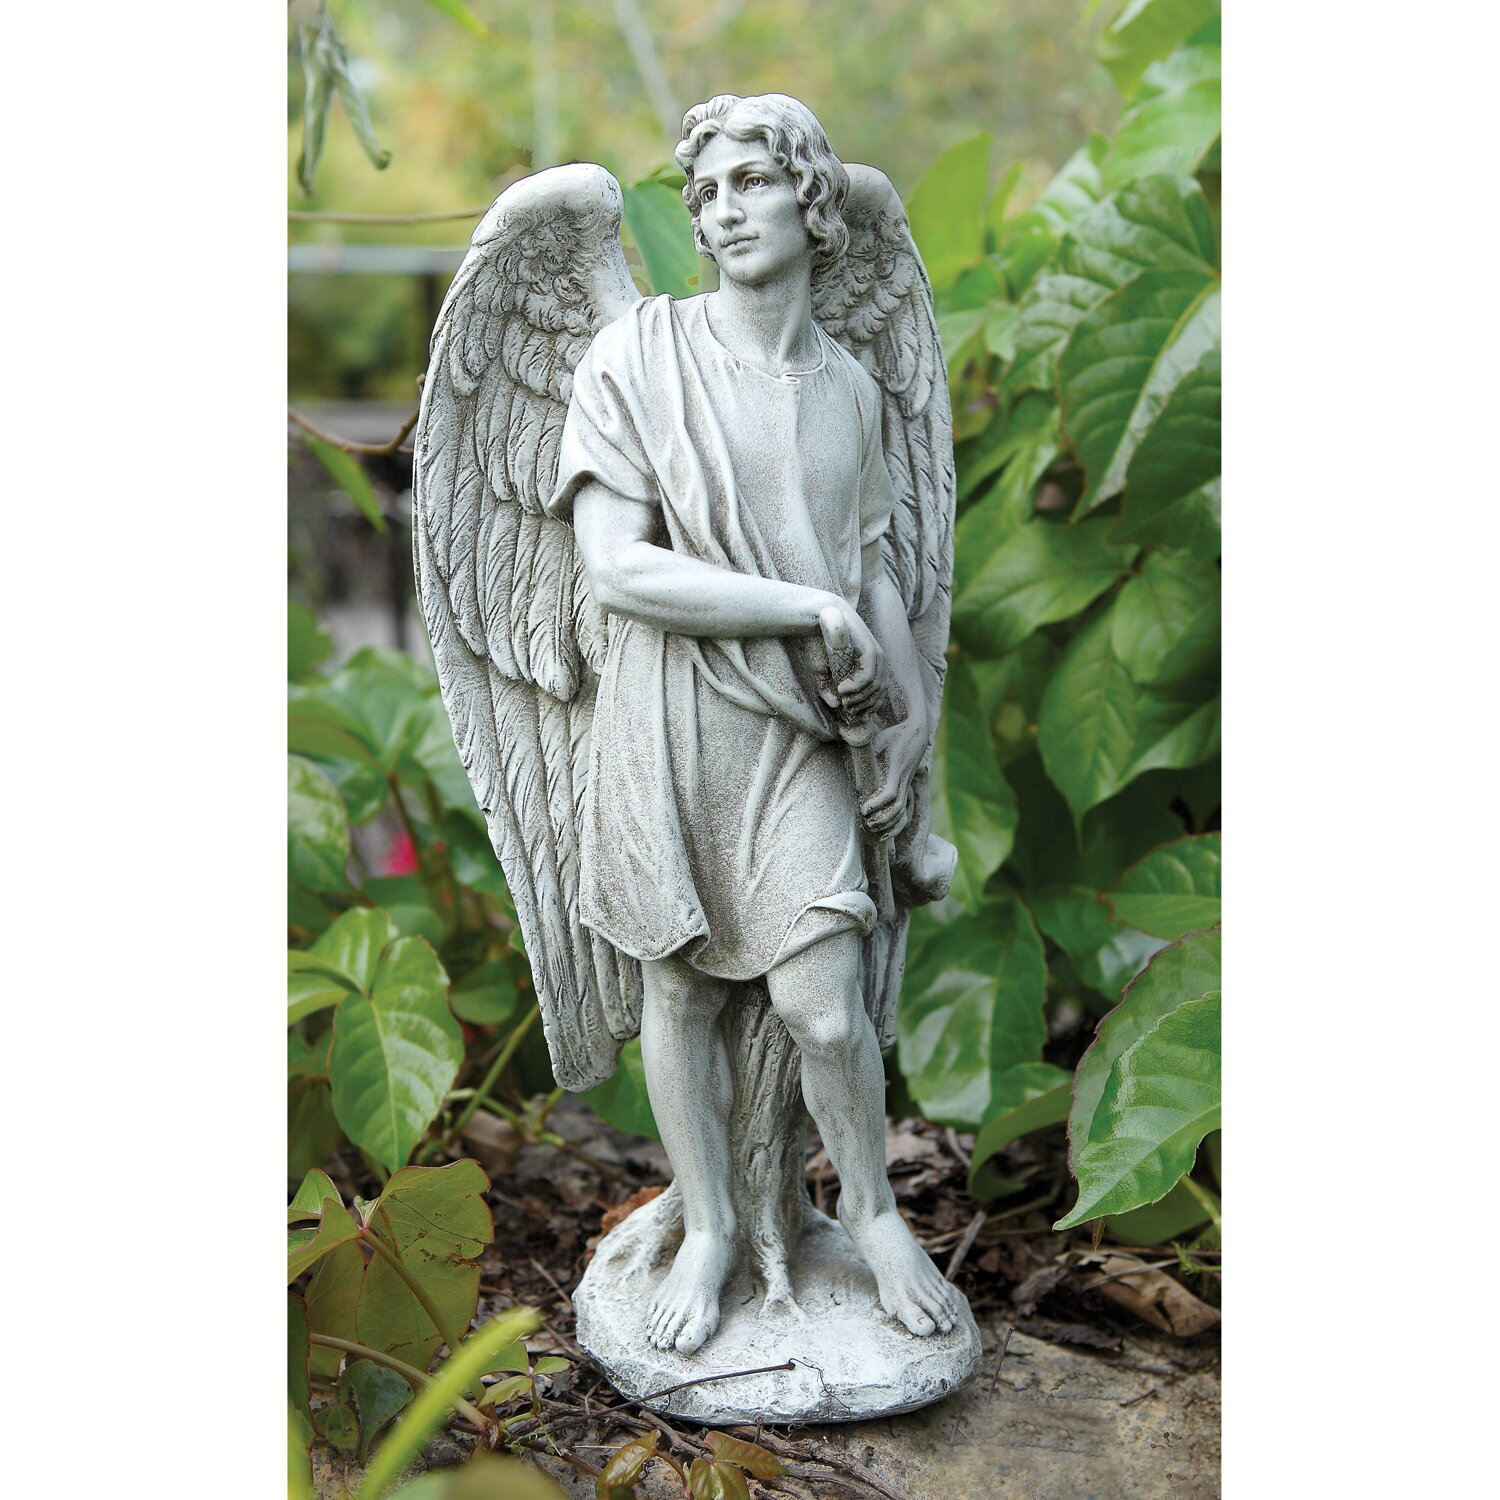 Josephs Studio Male Garden Angel Statue Reviews Wayfair